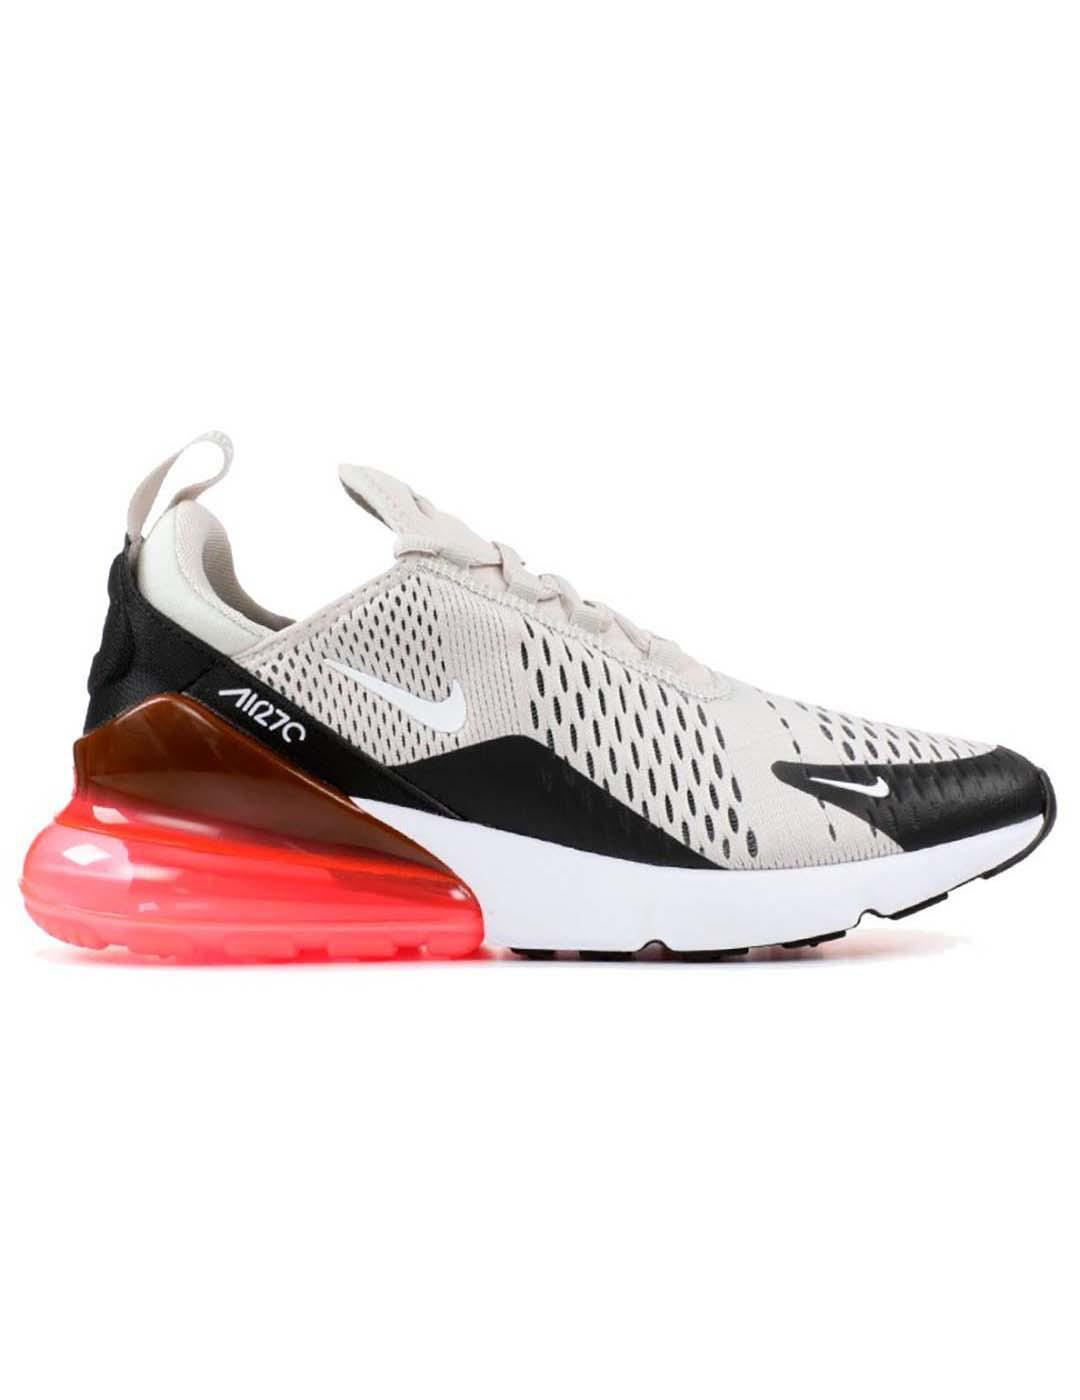 Zapatillas Nike Nike Air Max 270 BlackLight Bone 40 000